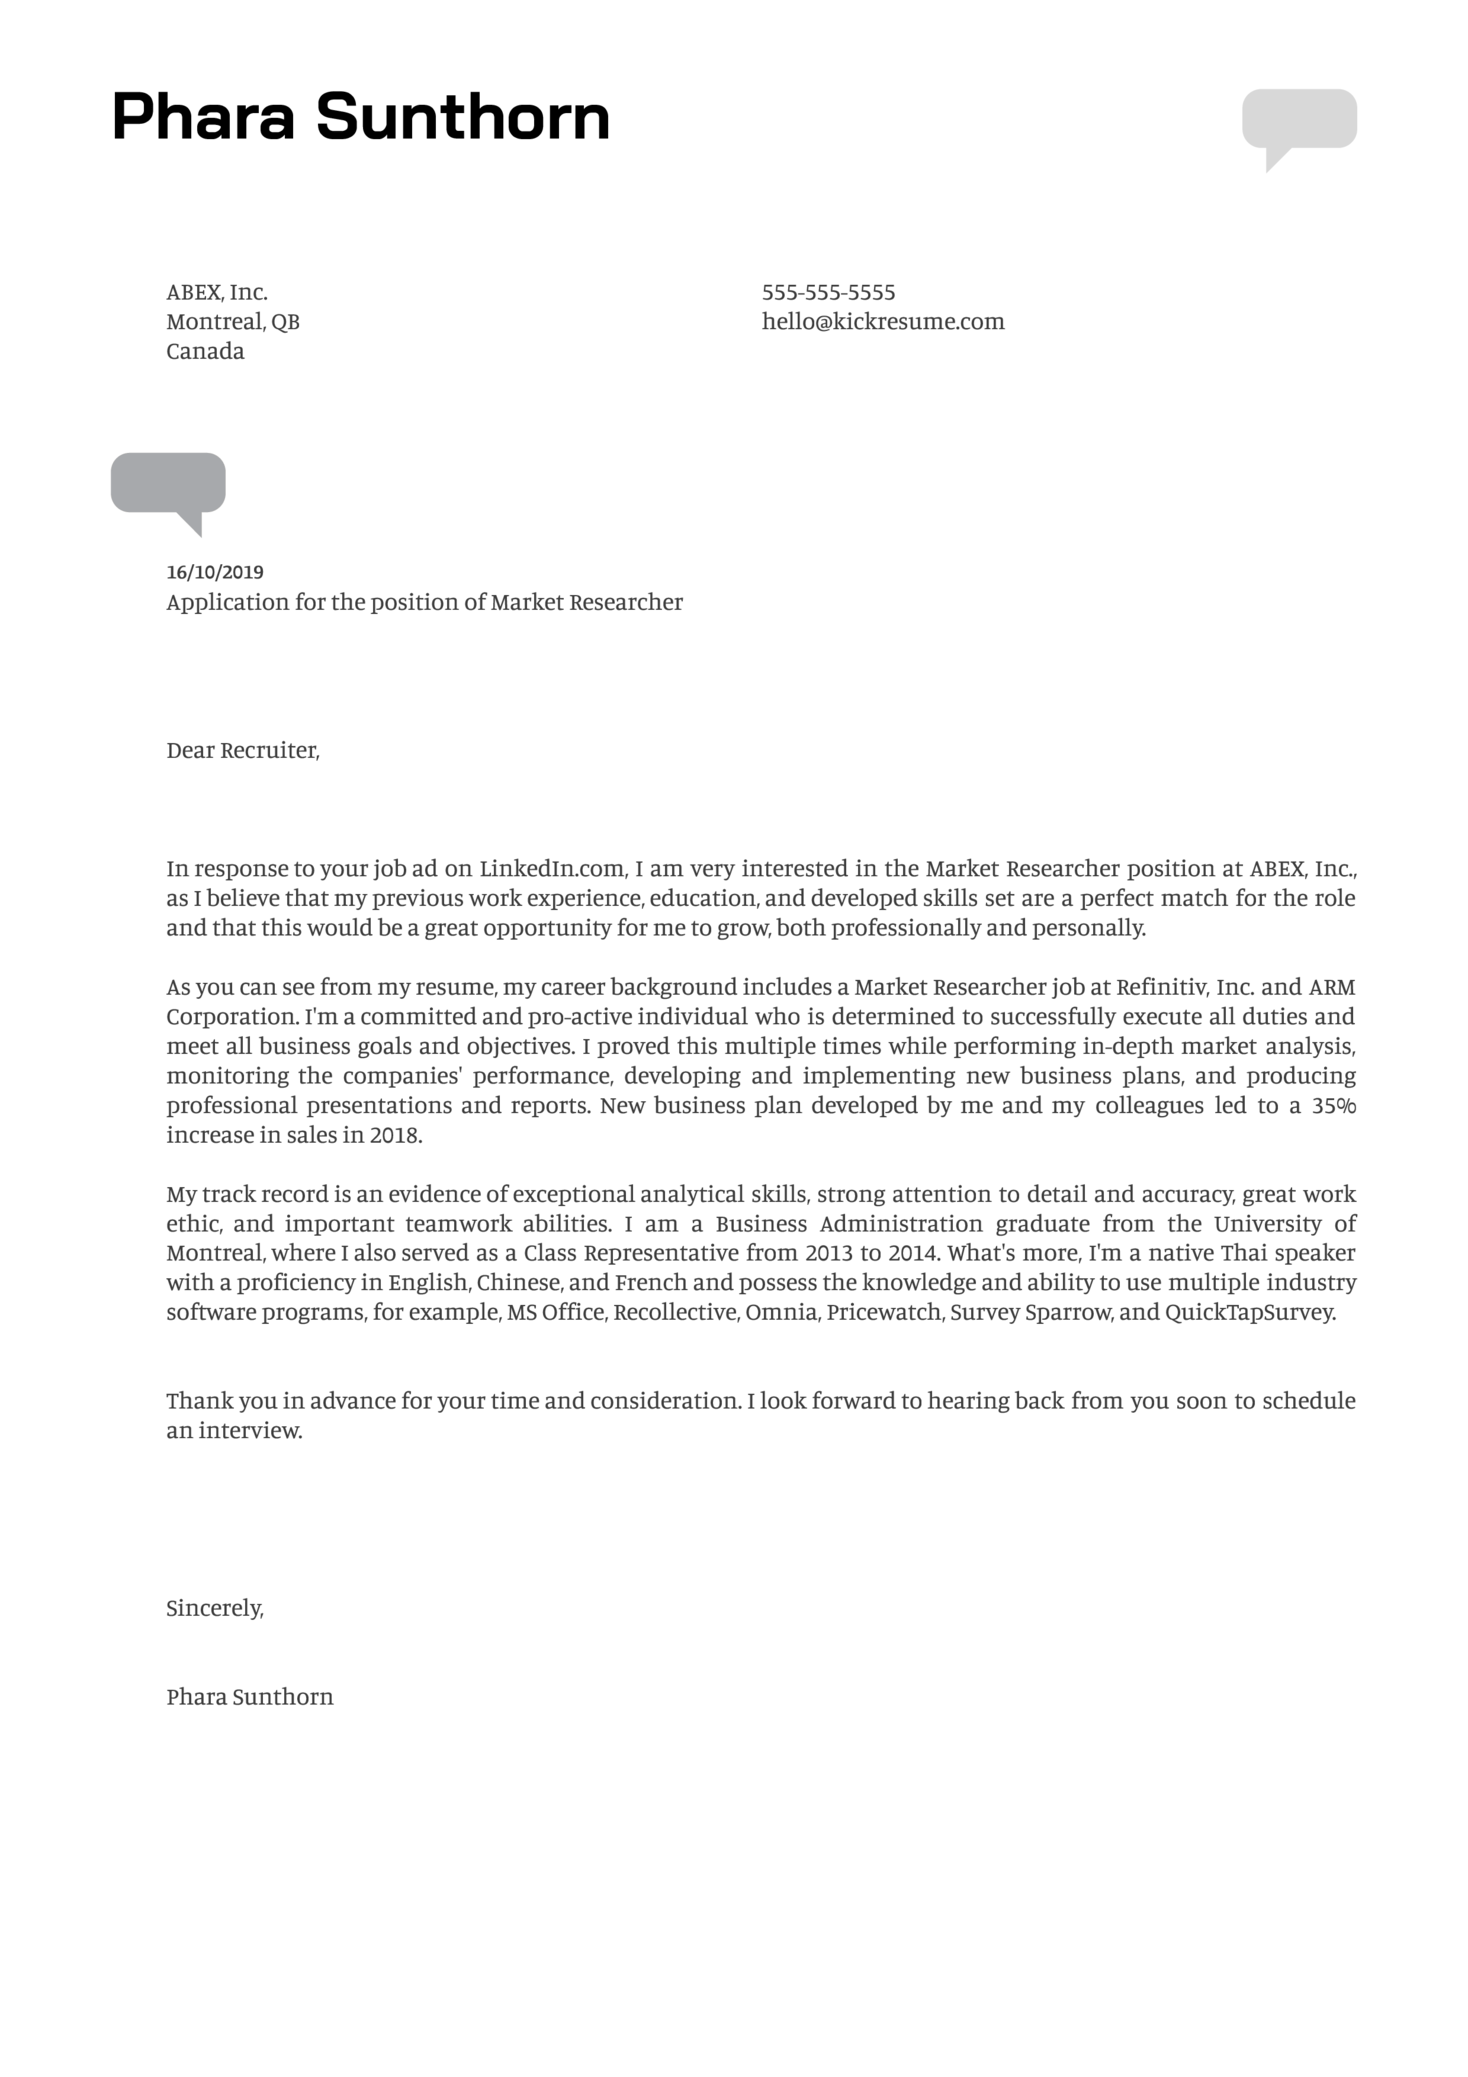 Market Researcher Cover Letter Example